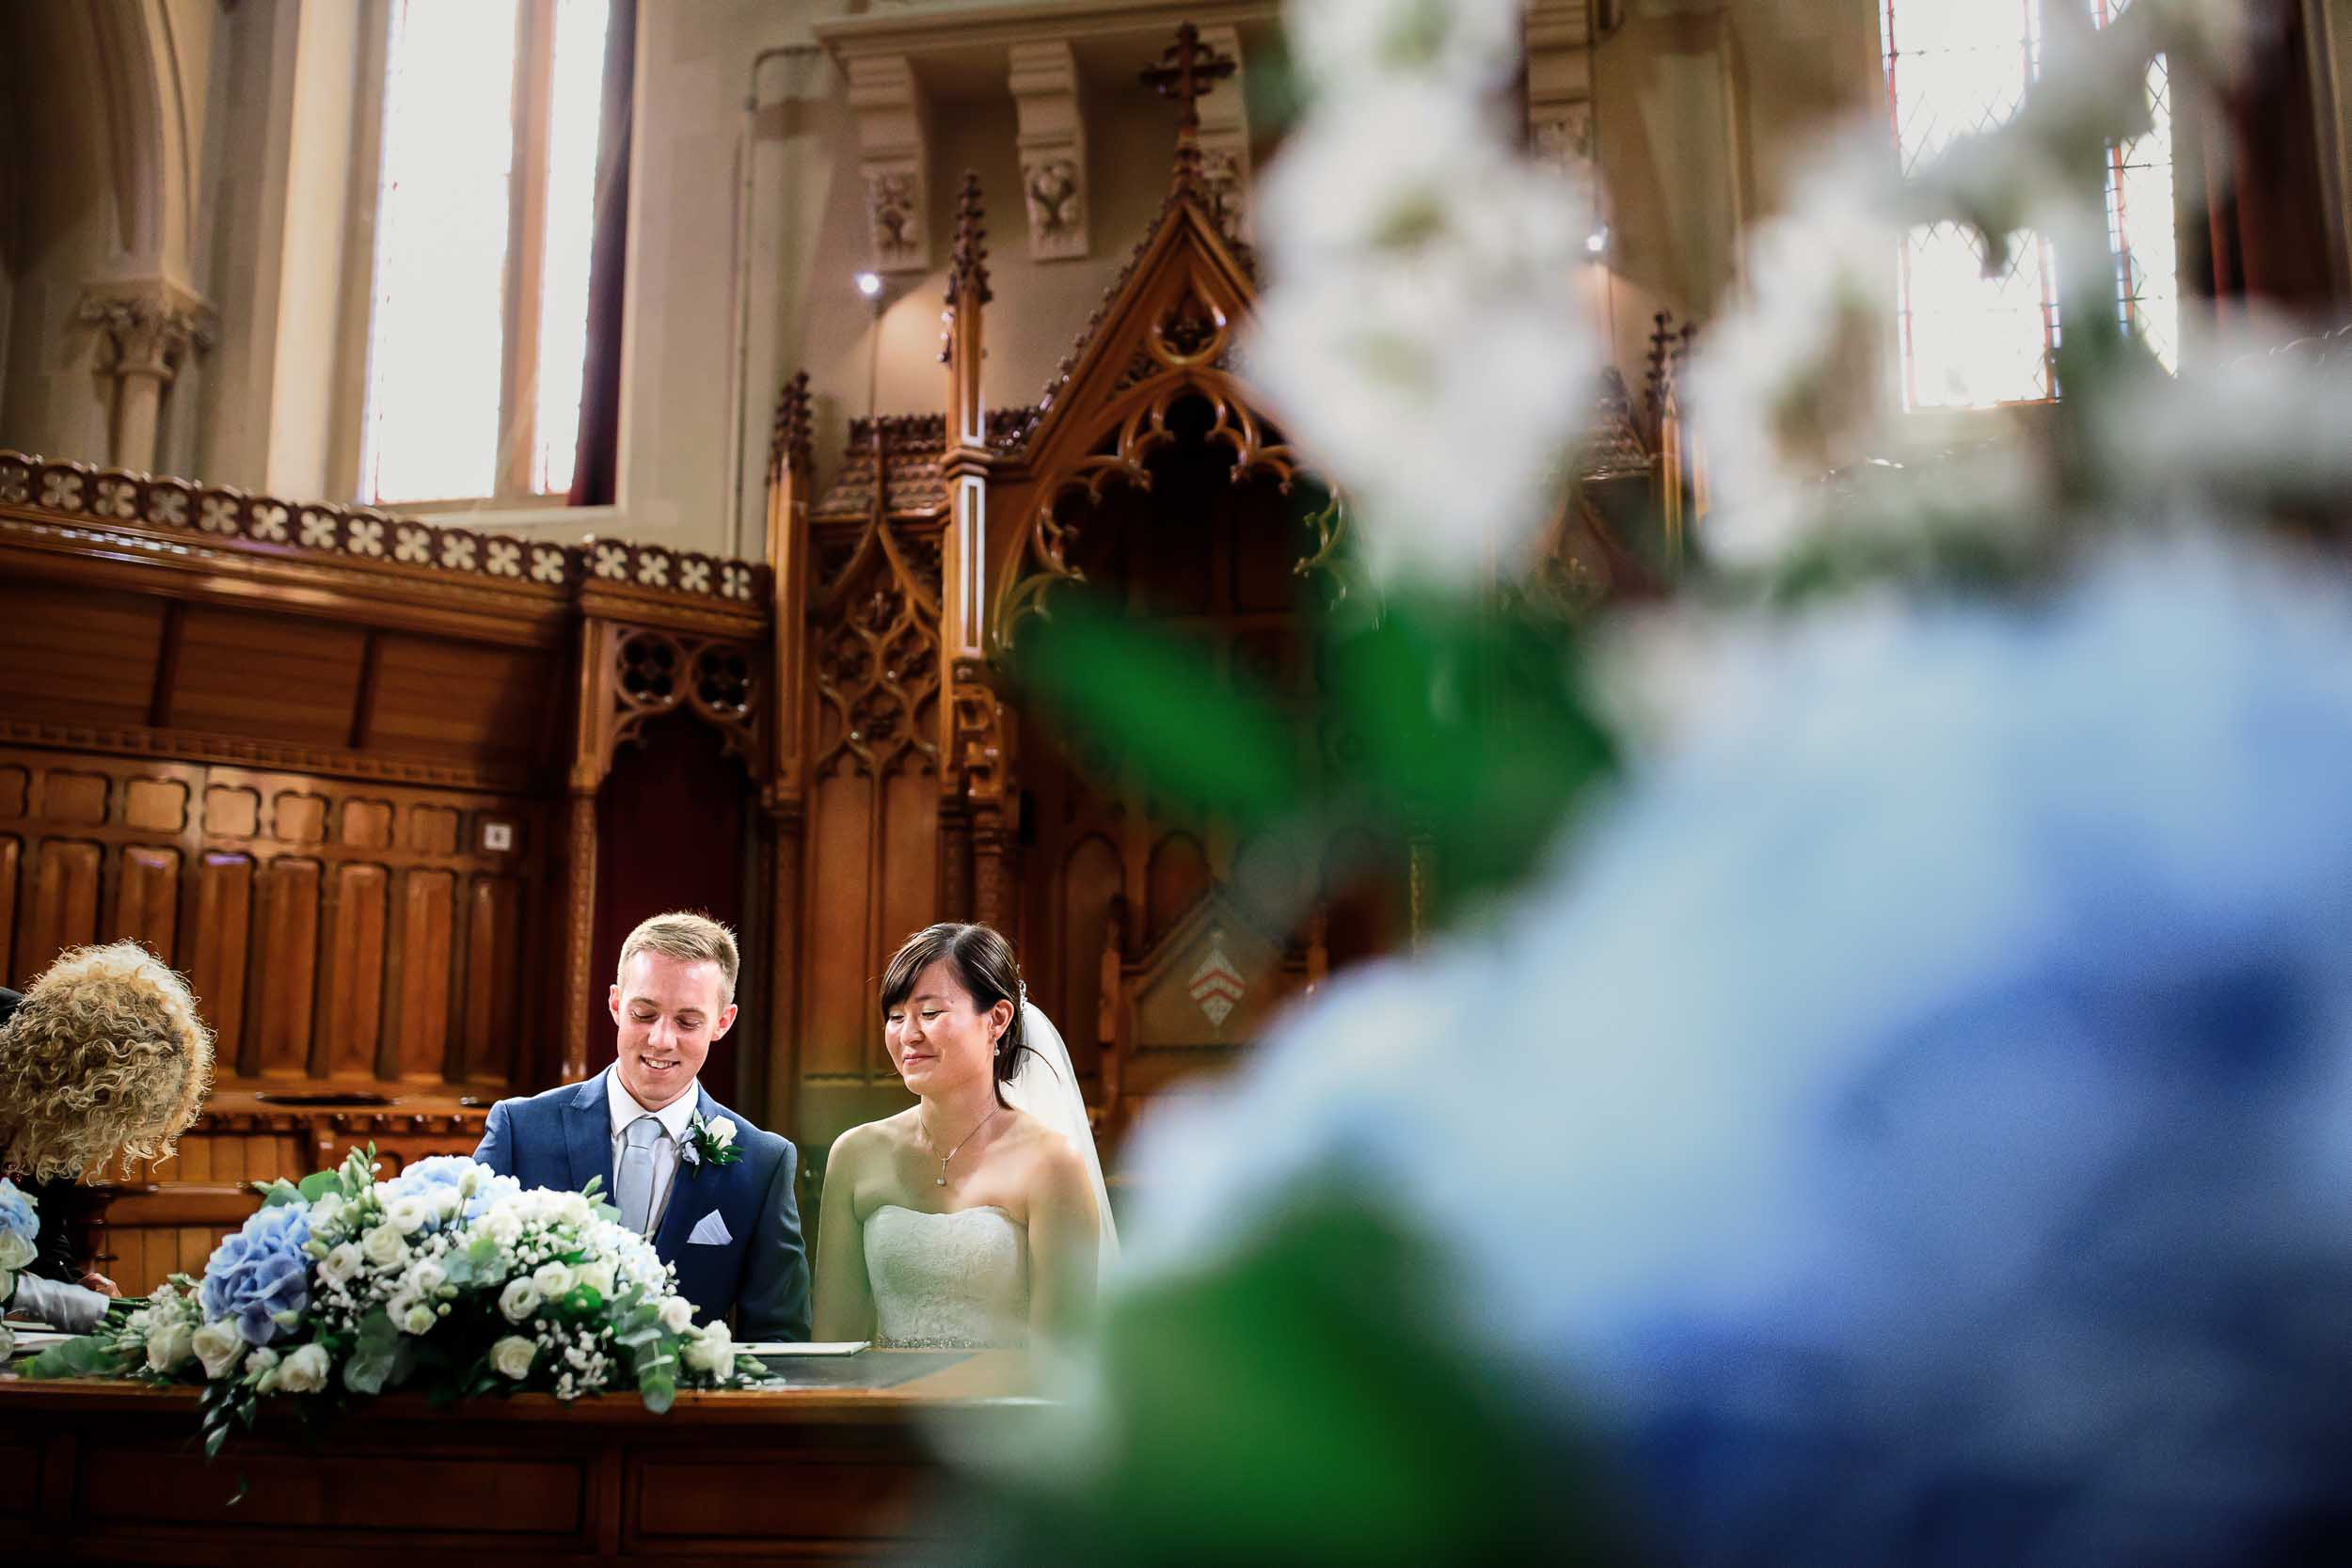 Stanbrook, abbey, Wedding, Photographer, Herefordshire, Worcestershire, Stanbrook Abbey, Wedding Photographer, Stanbrook Abbey Wedding Photographer,